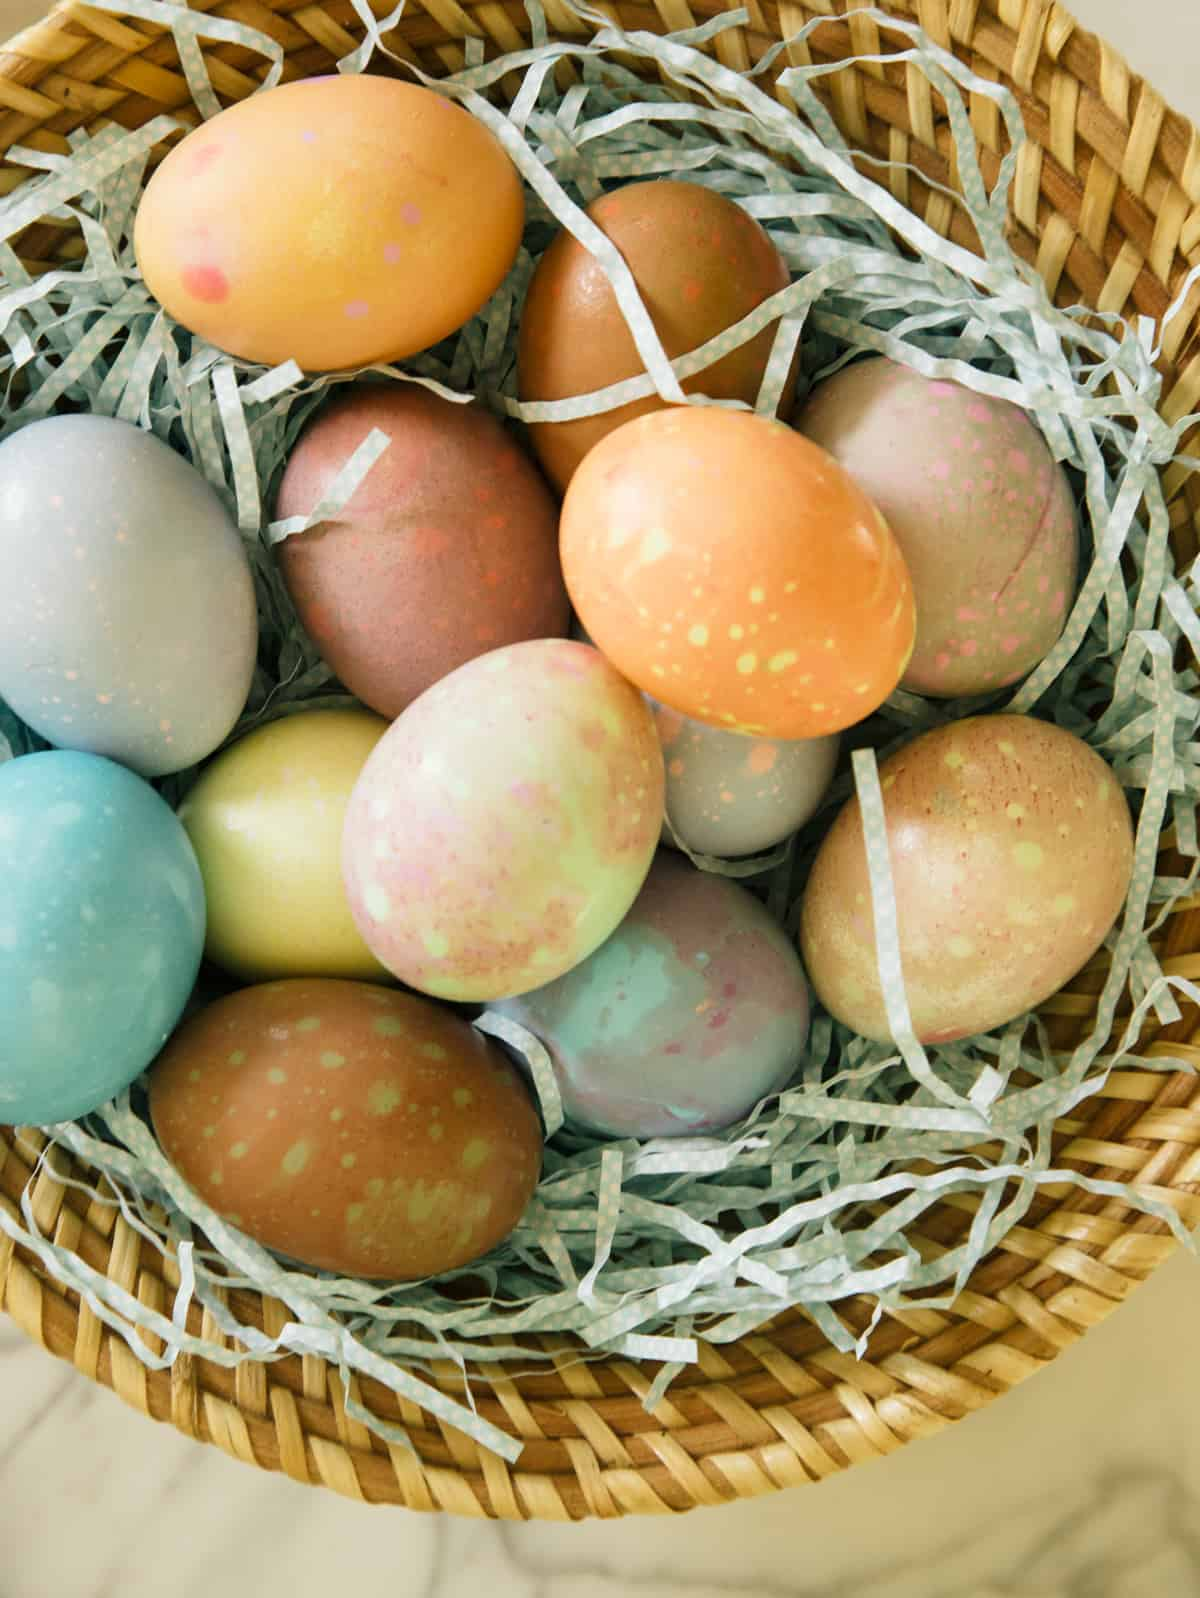 A close up of spotted Easter eggs in a basket.